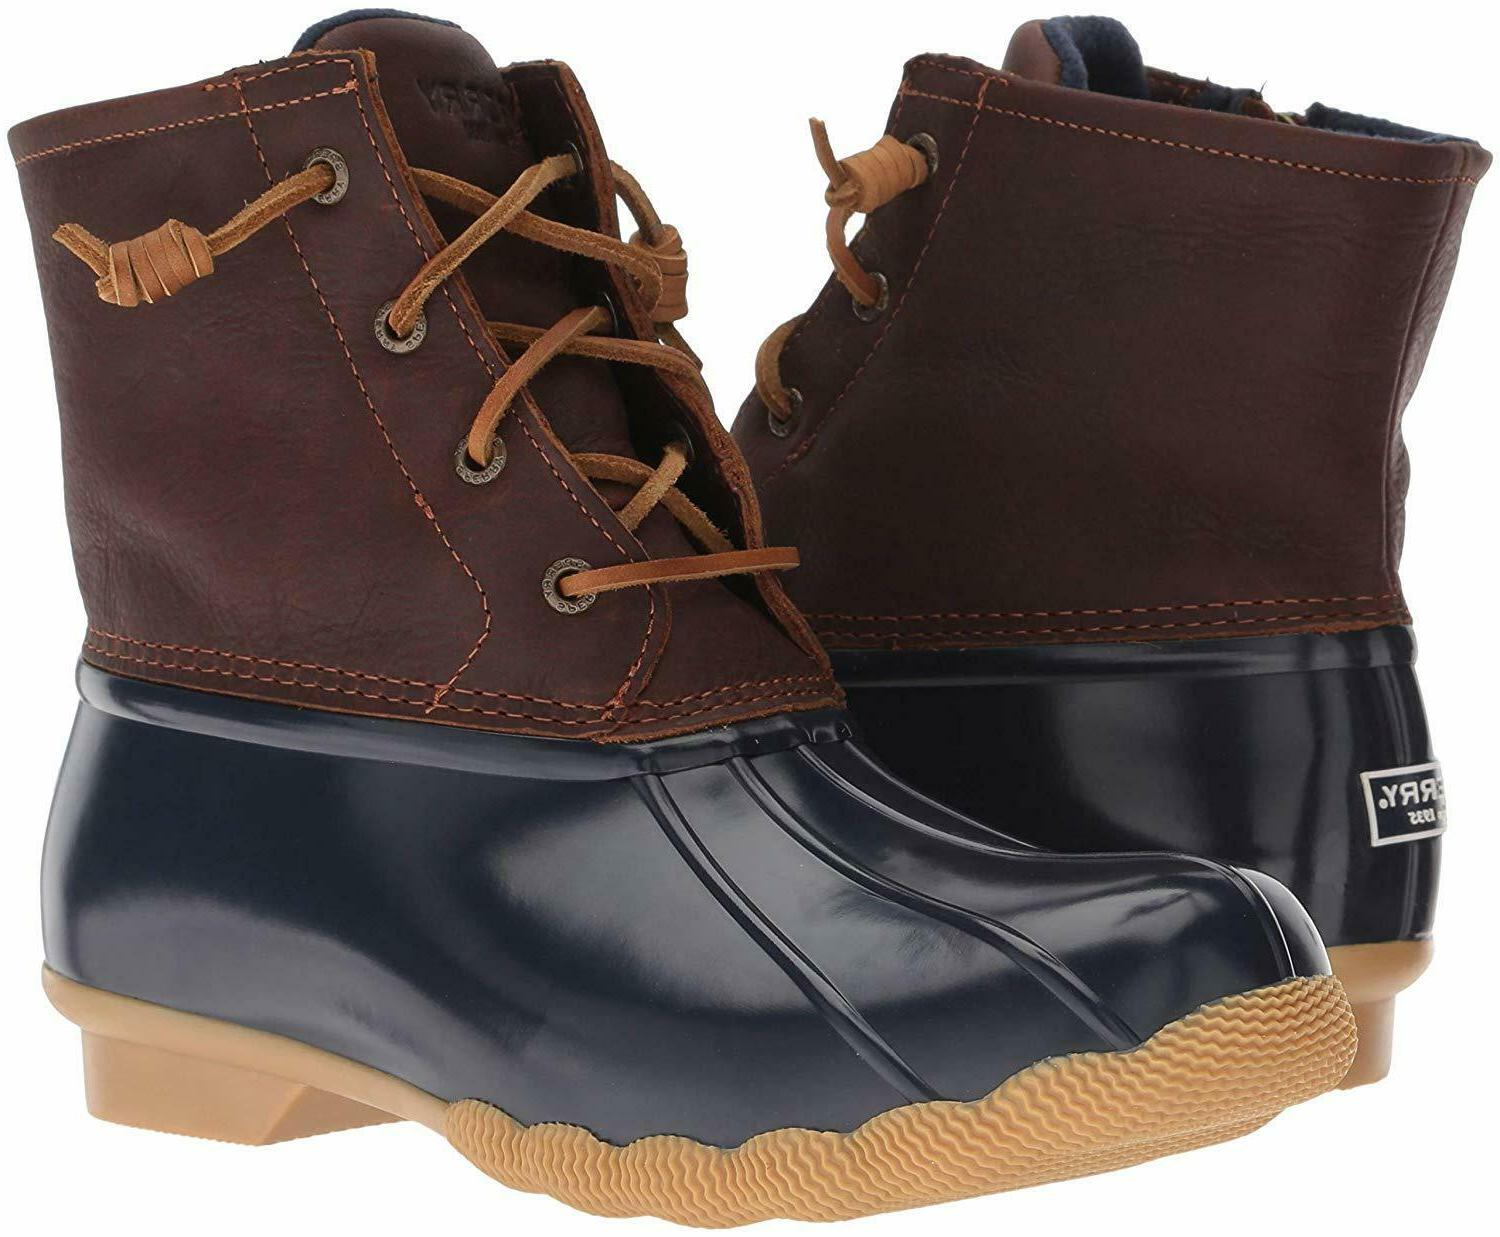 Sperry Women's Boot